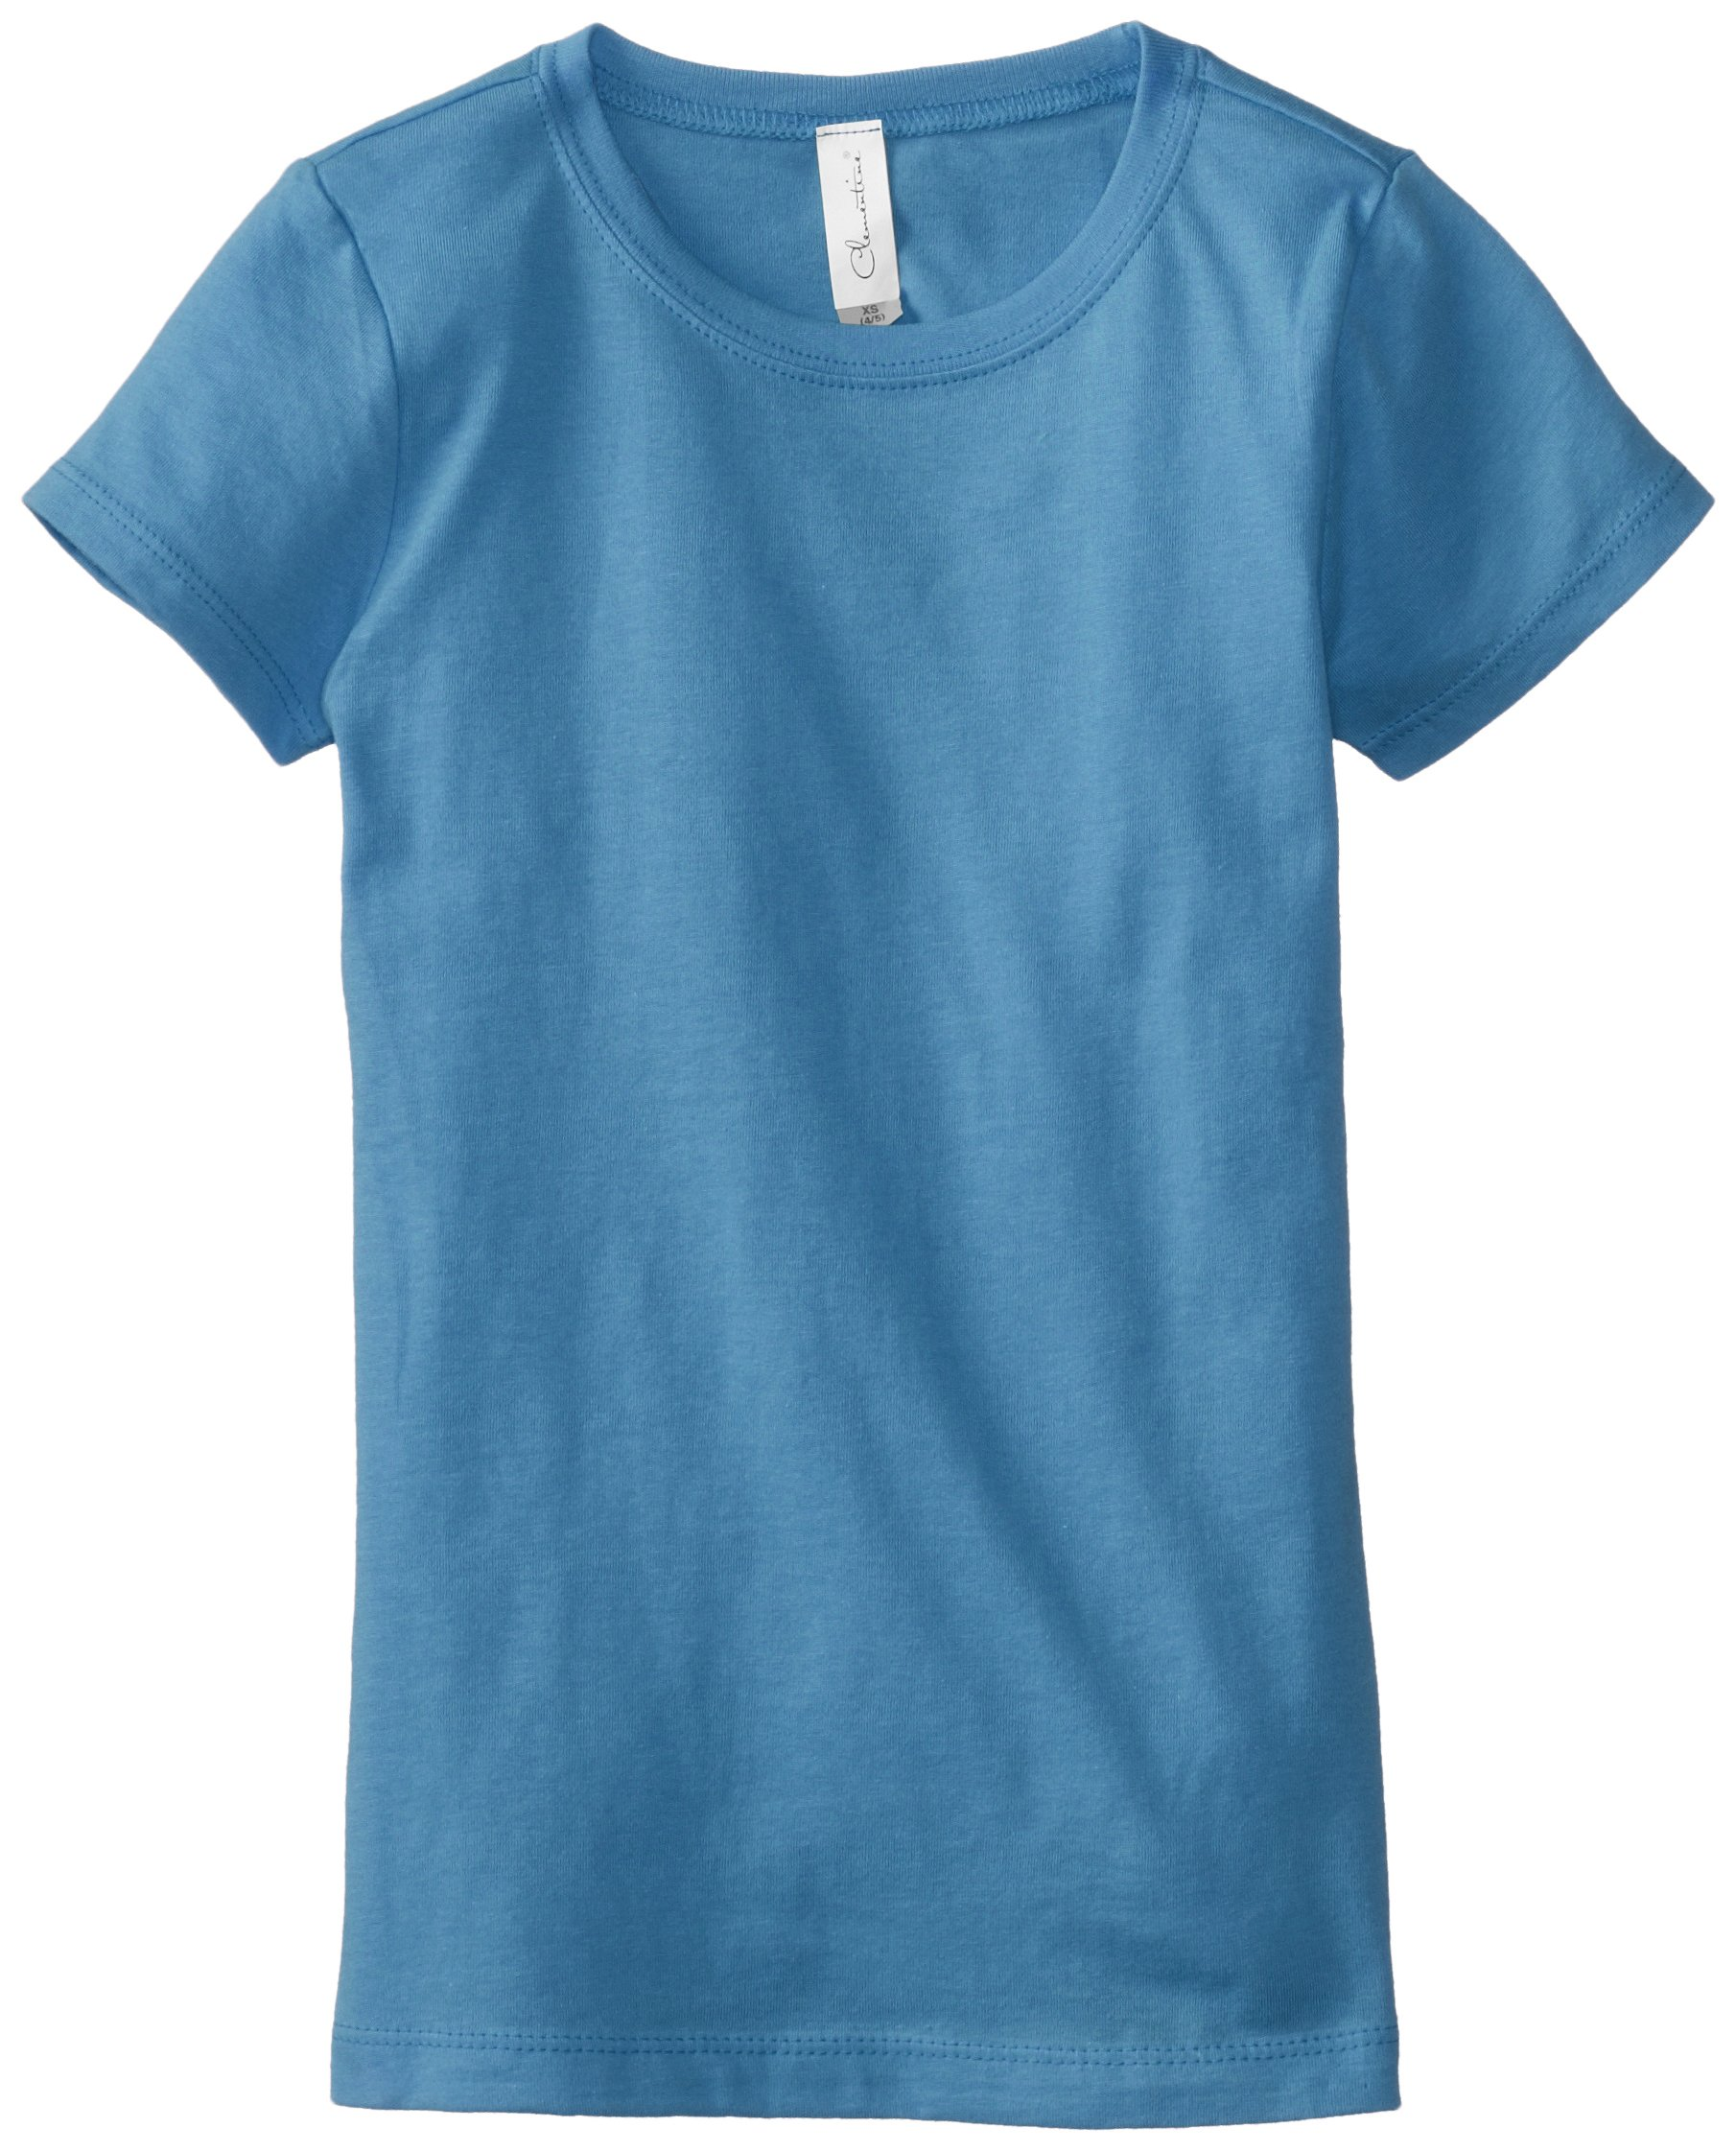 Clementine Big Girls' Everyday T-Shirt, Turquoise, Large(10-12)